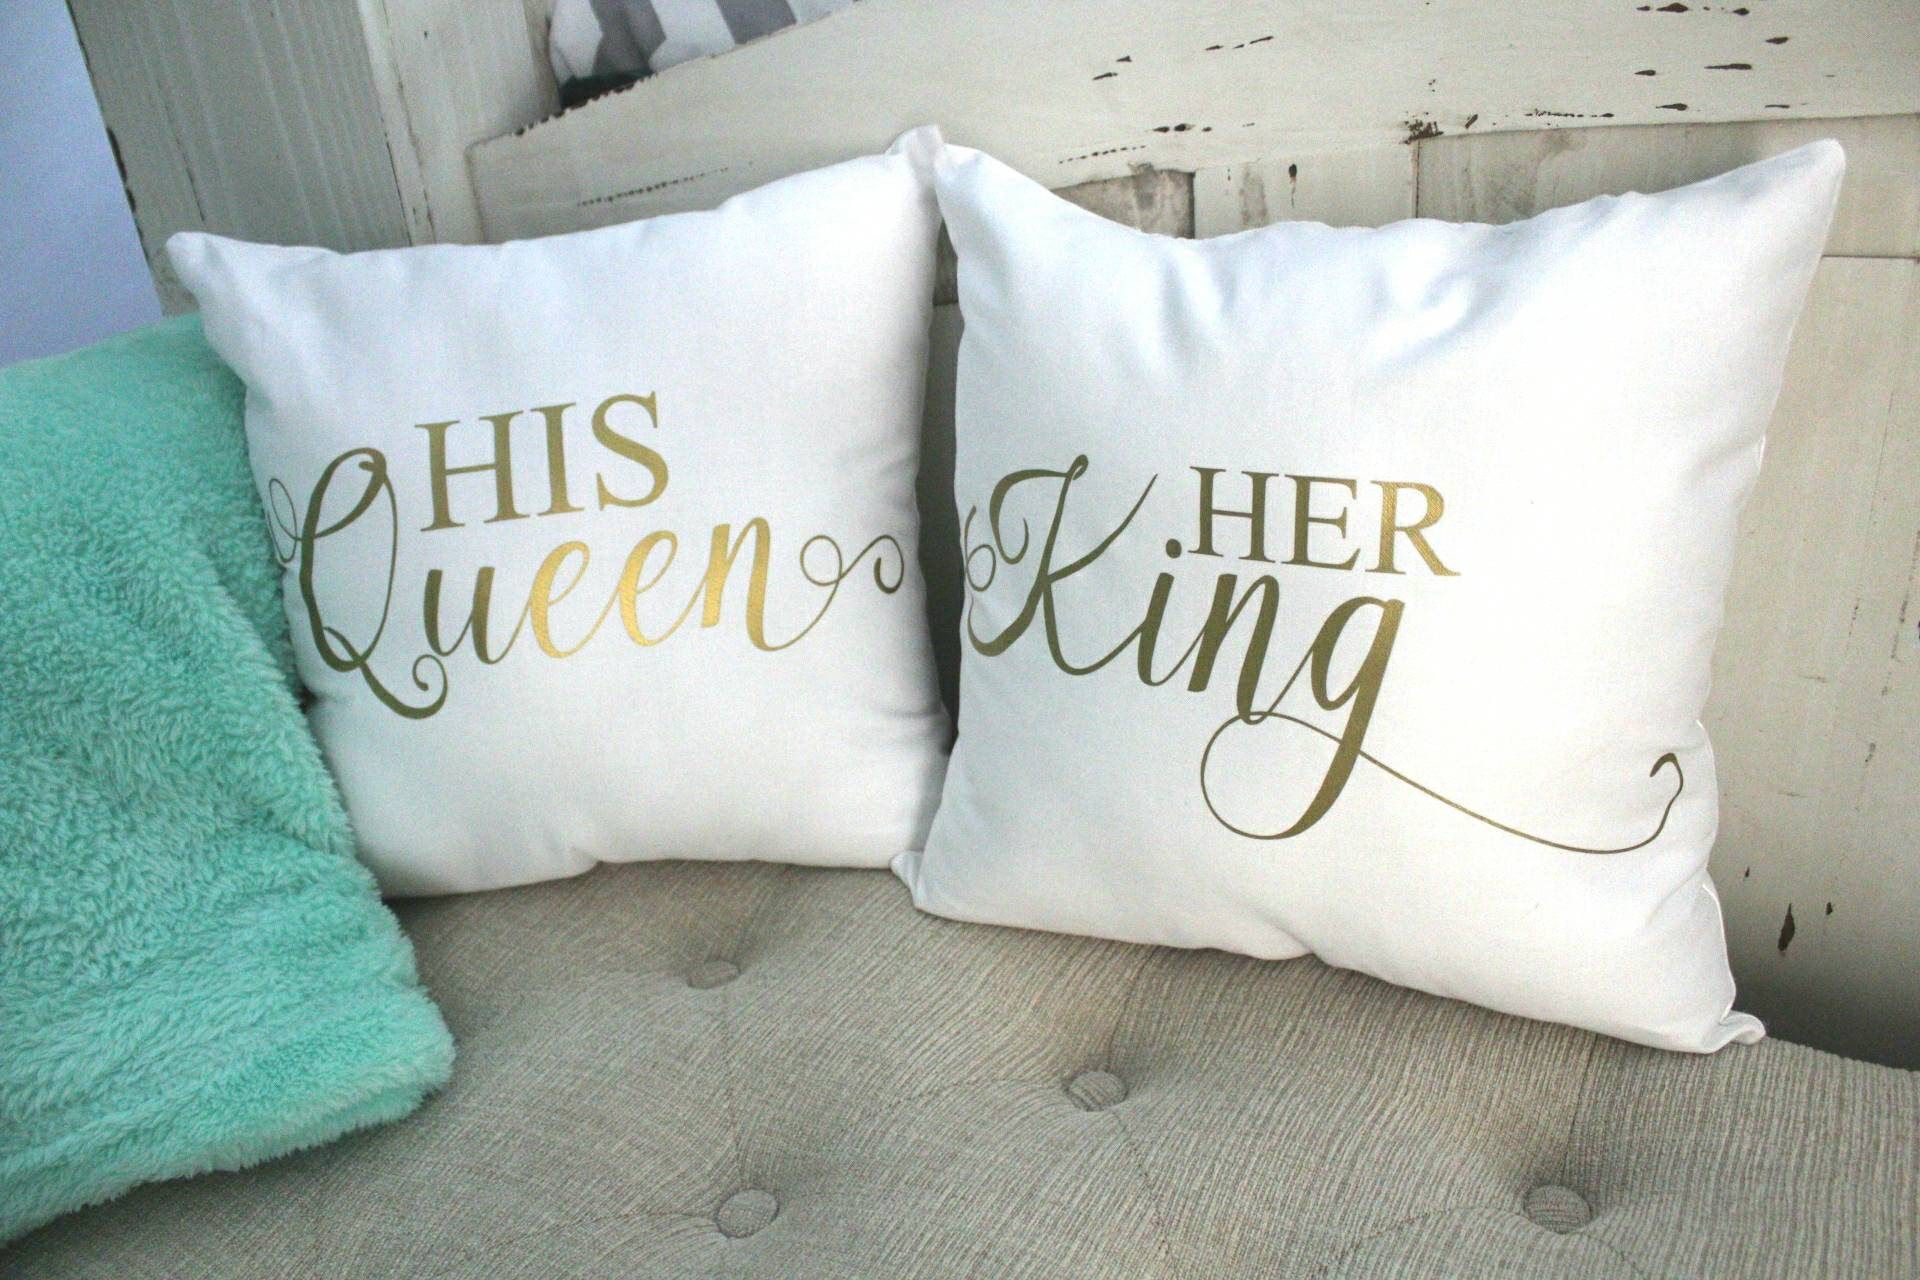 Valentines Gifts Valentines Gifts For Him King And Queen Pillows